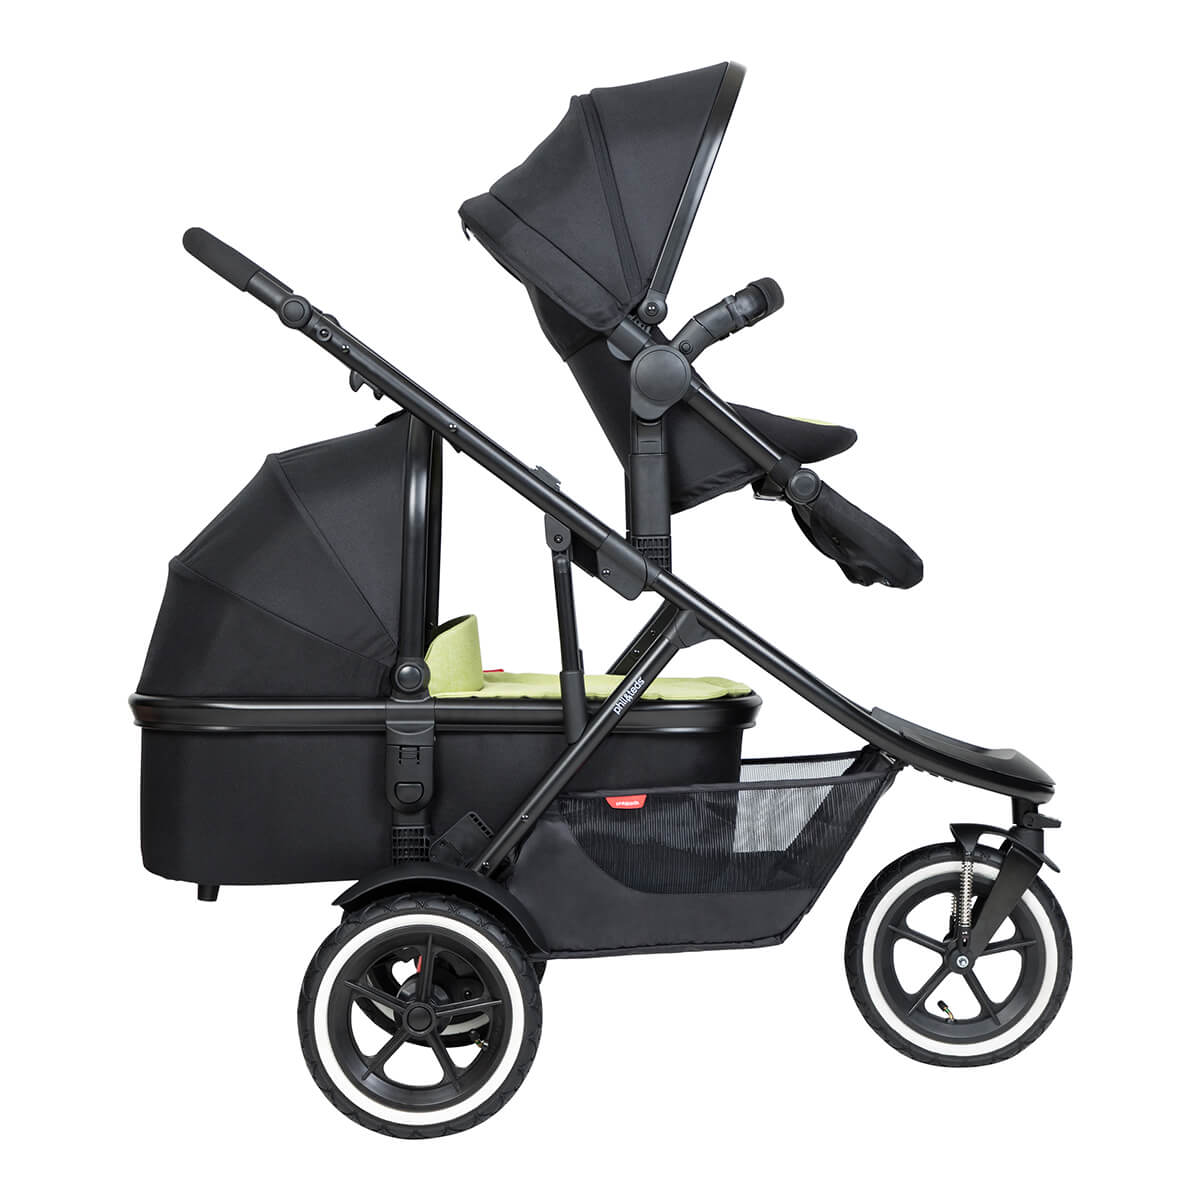 https://cdn.accentuate.io/4509528719448/19272668282968/philteds-sport-poussette-with-double-kit-extended-clip-and-snug-carrycot-side-view-v1626484516618.jpg?1200x1200